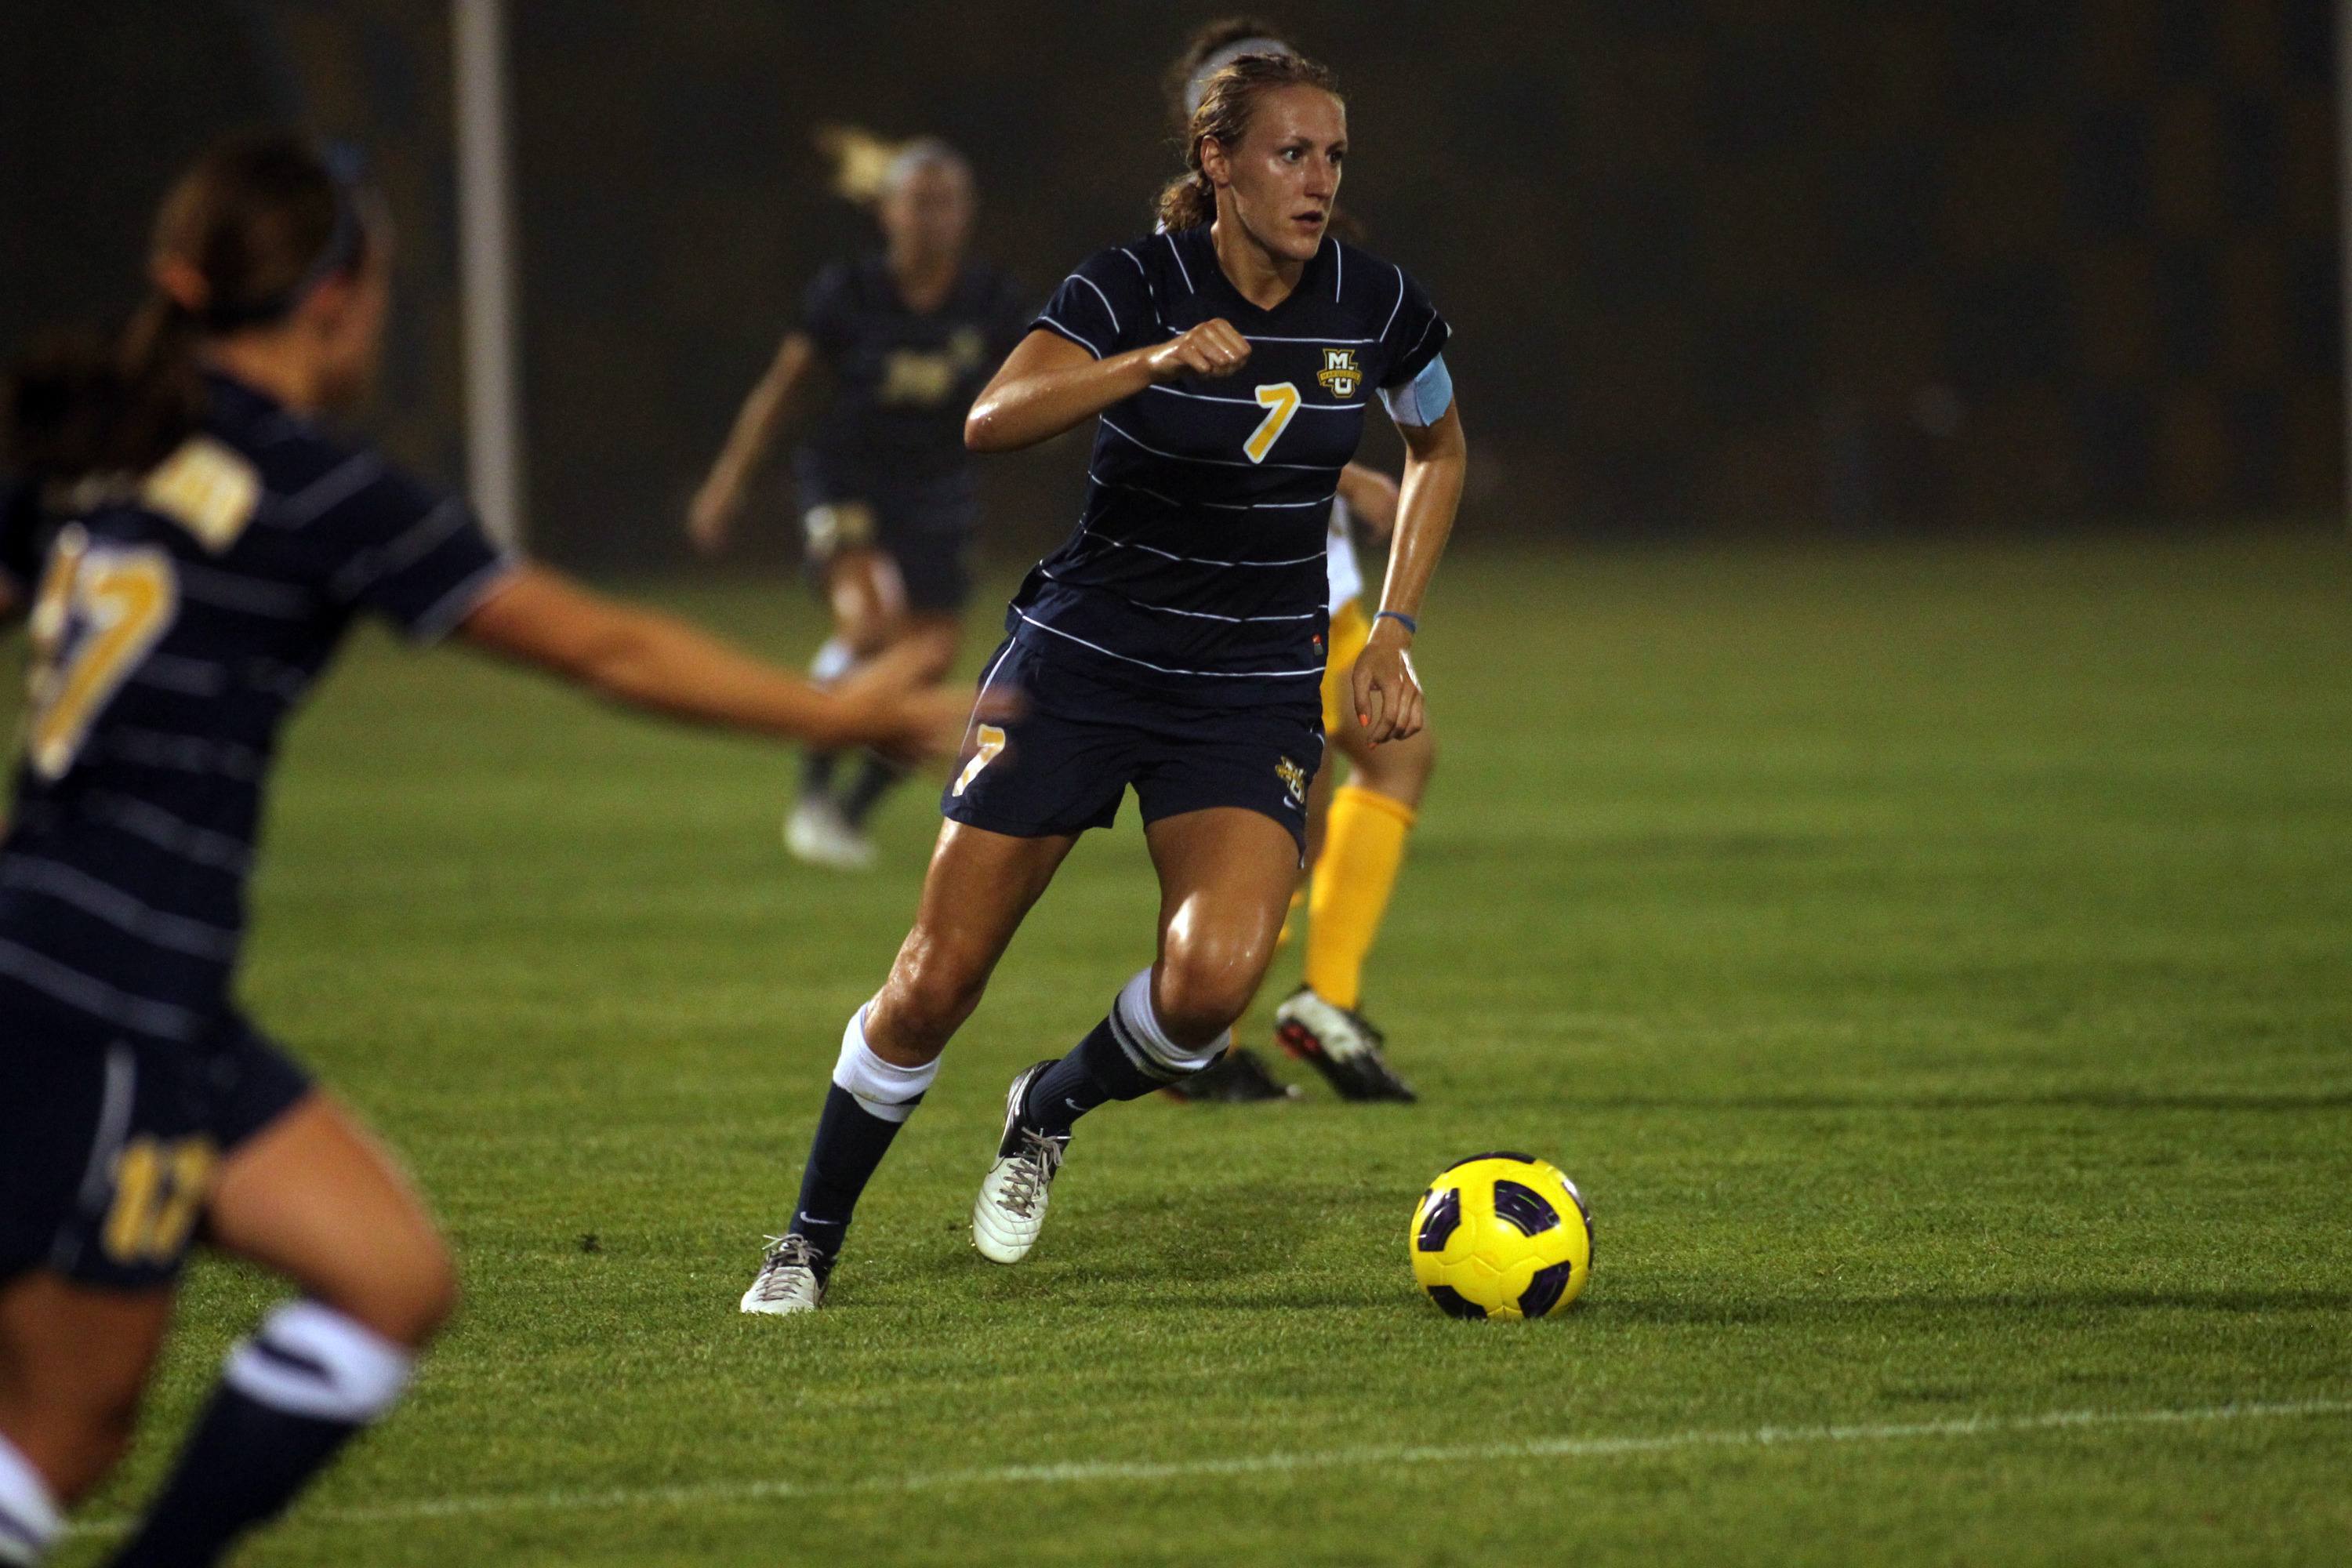 Morgan Proffitt (pictured), Jacie Jermier and Ashley Handwork will play with the Chicago Red Stars Reserves in the WPSL semifinals on Saturday.